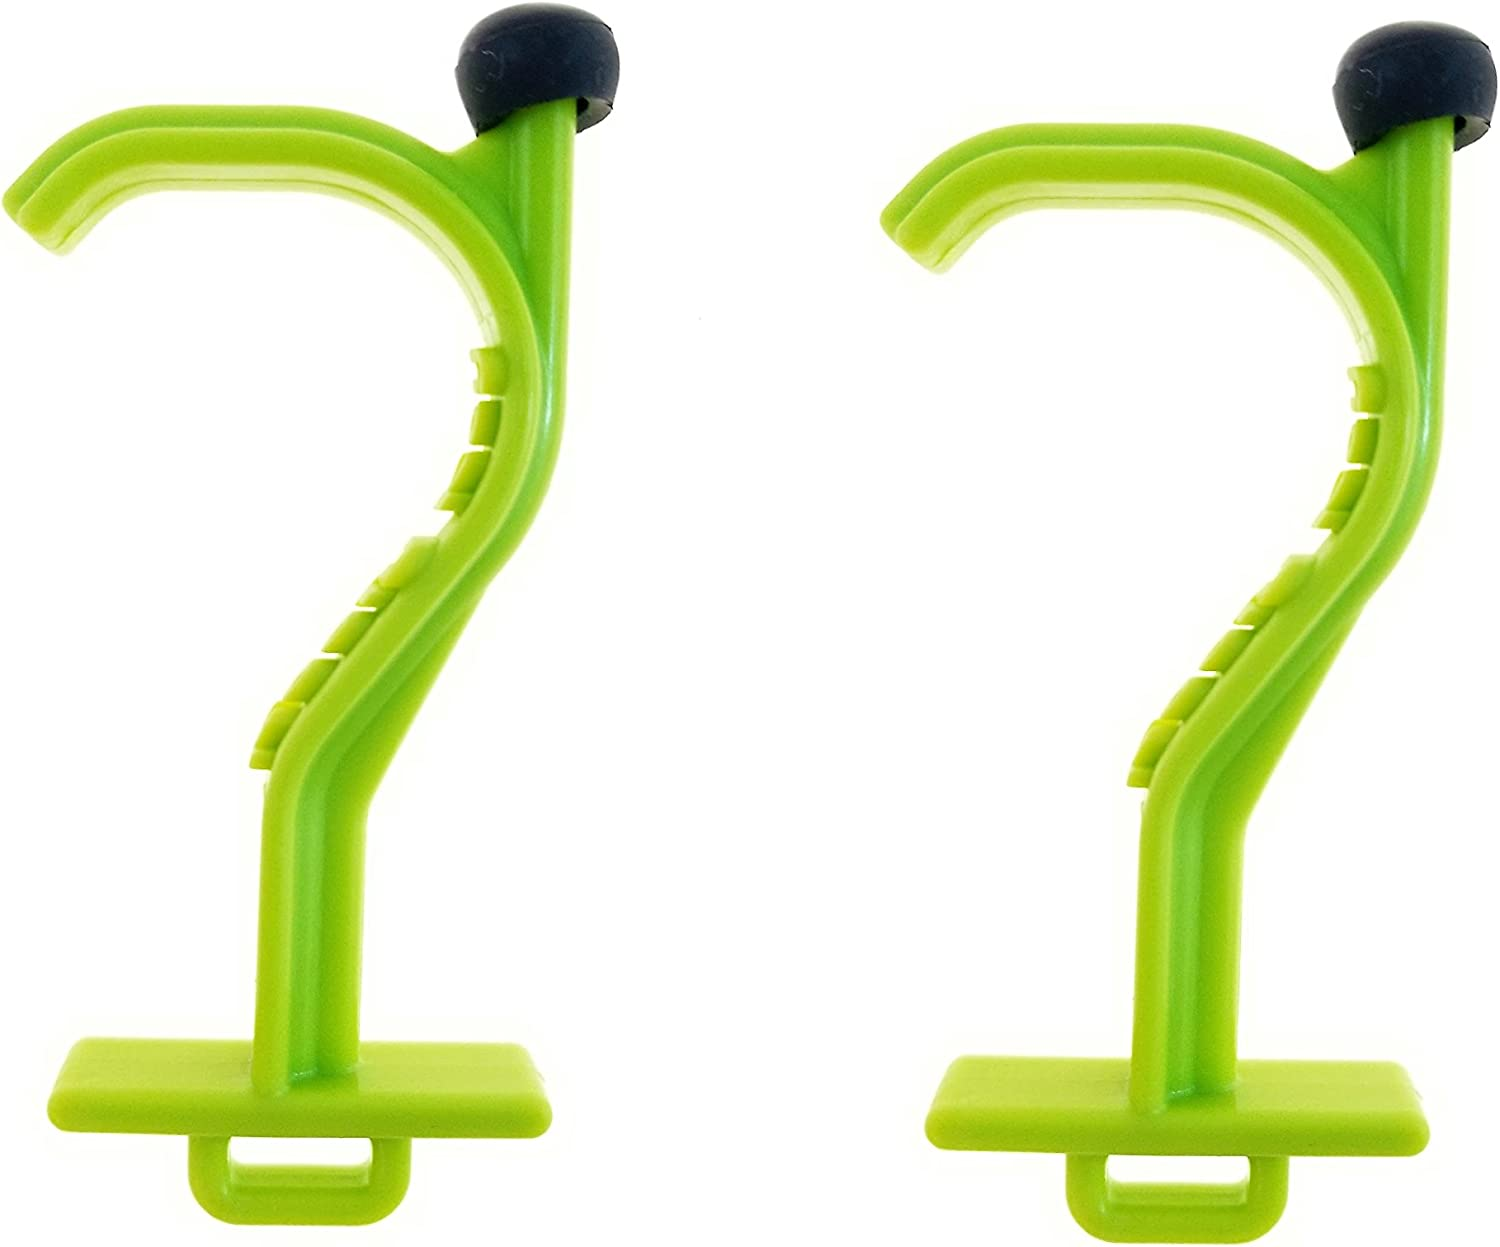 Kooty Key Germ Utility Tool Carabiner Included Avoid Touching Bacteria Ridden Surfaces 2 Pack, Green Colors May Vary